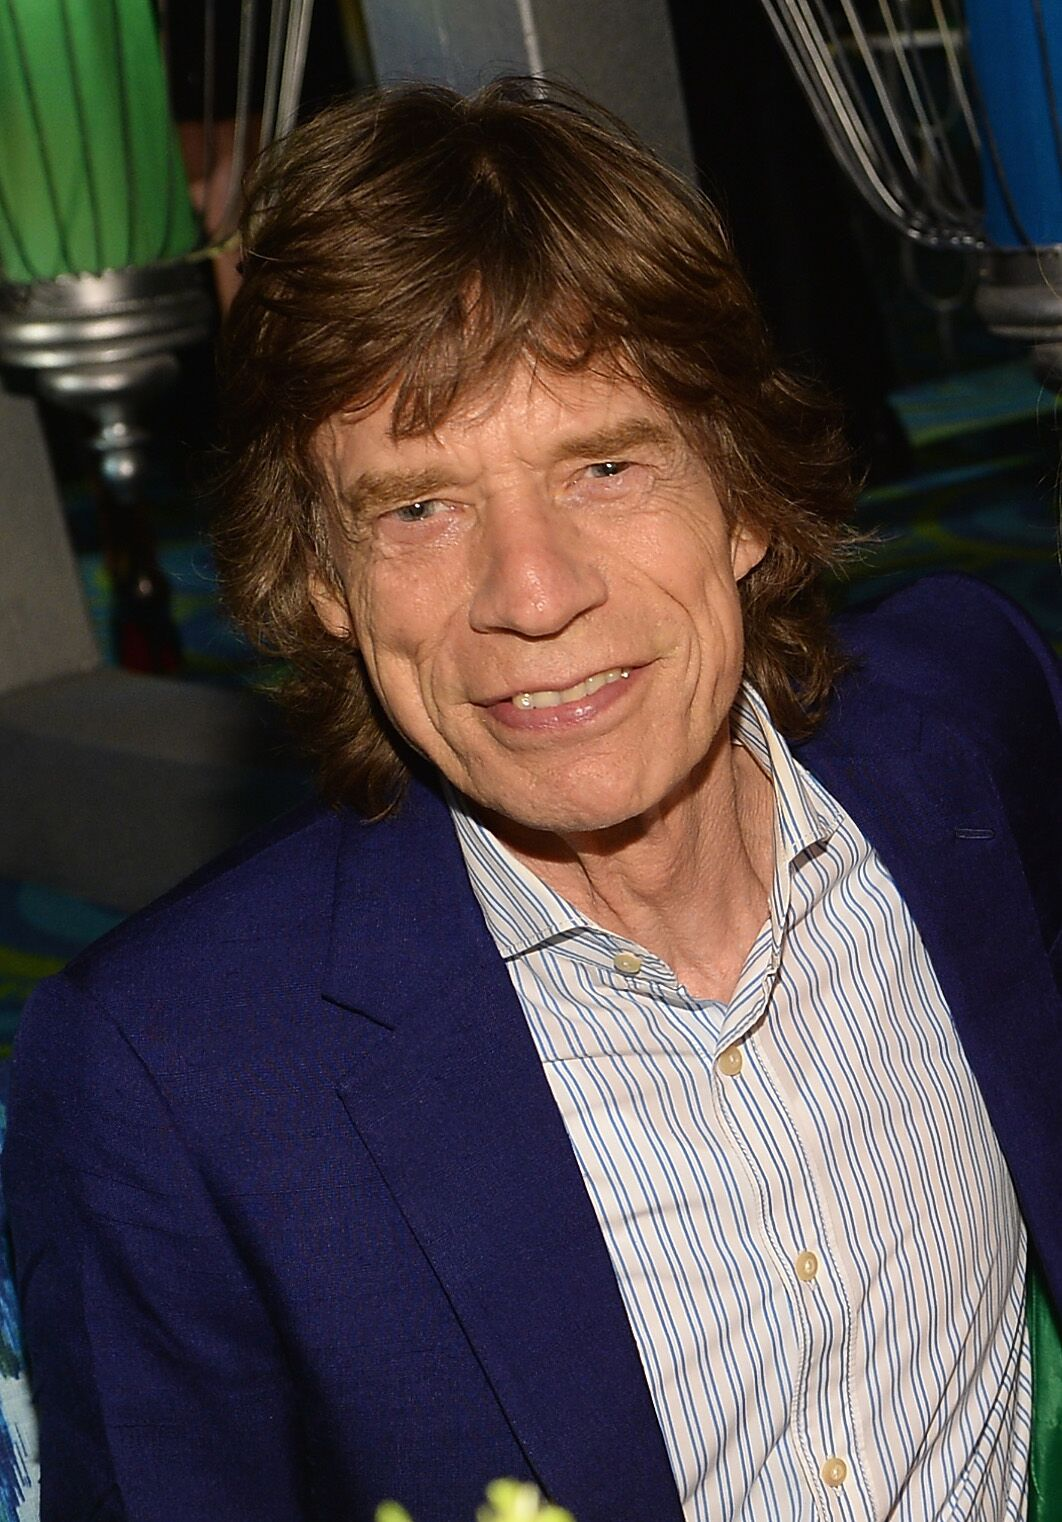 Mick Jagger attends HBO's Annual Primetime Emmy Awards Post Award Reception at The Plaza at the Pacific Design Center on September 22, 2013 in Los Angeles, California | Photo: Getty Images